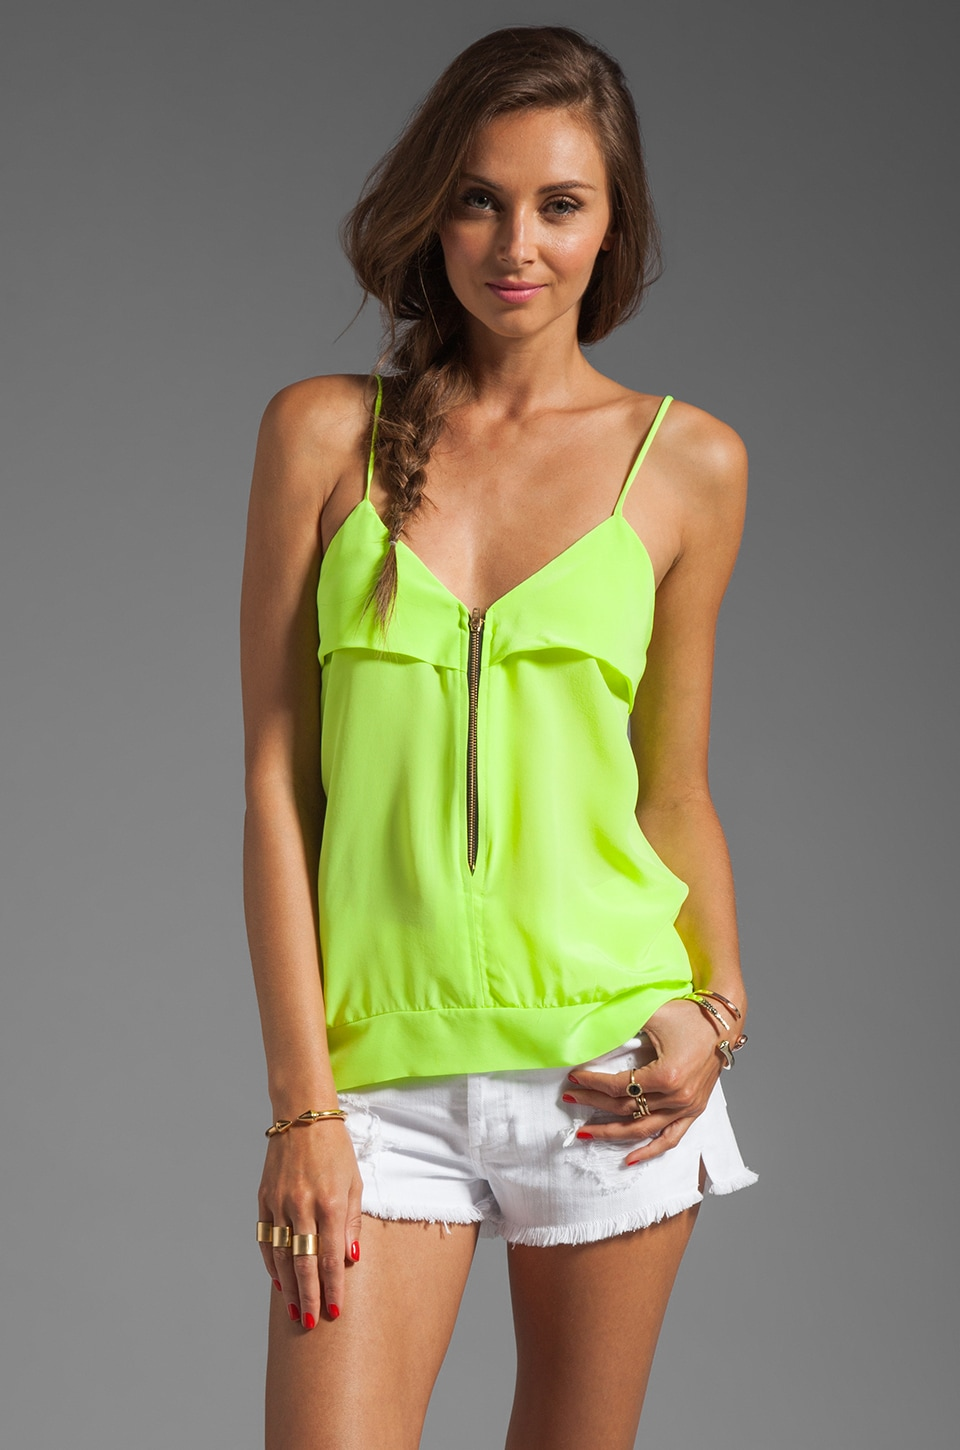 Karina Grimaldi Sophie Zipper Top in Neon Green